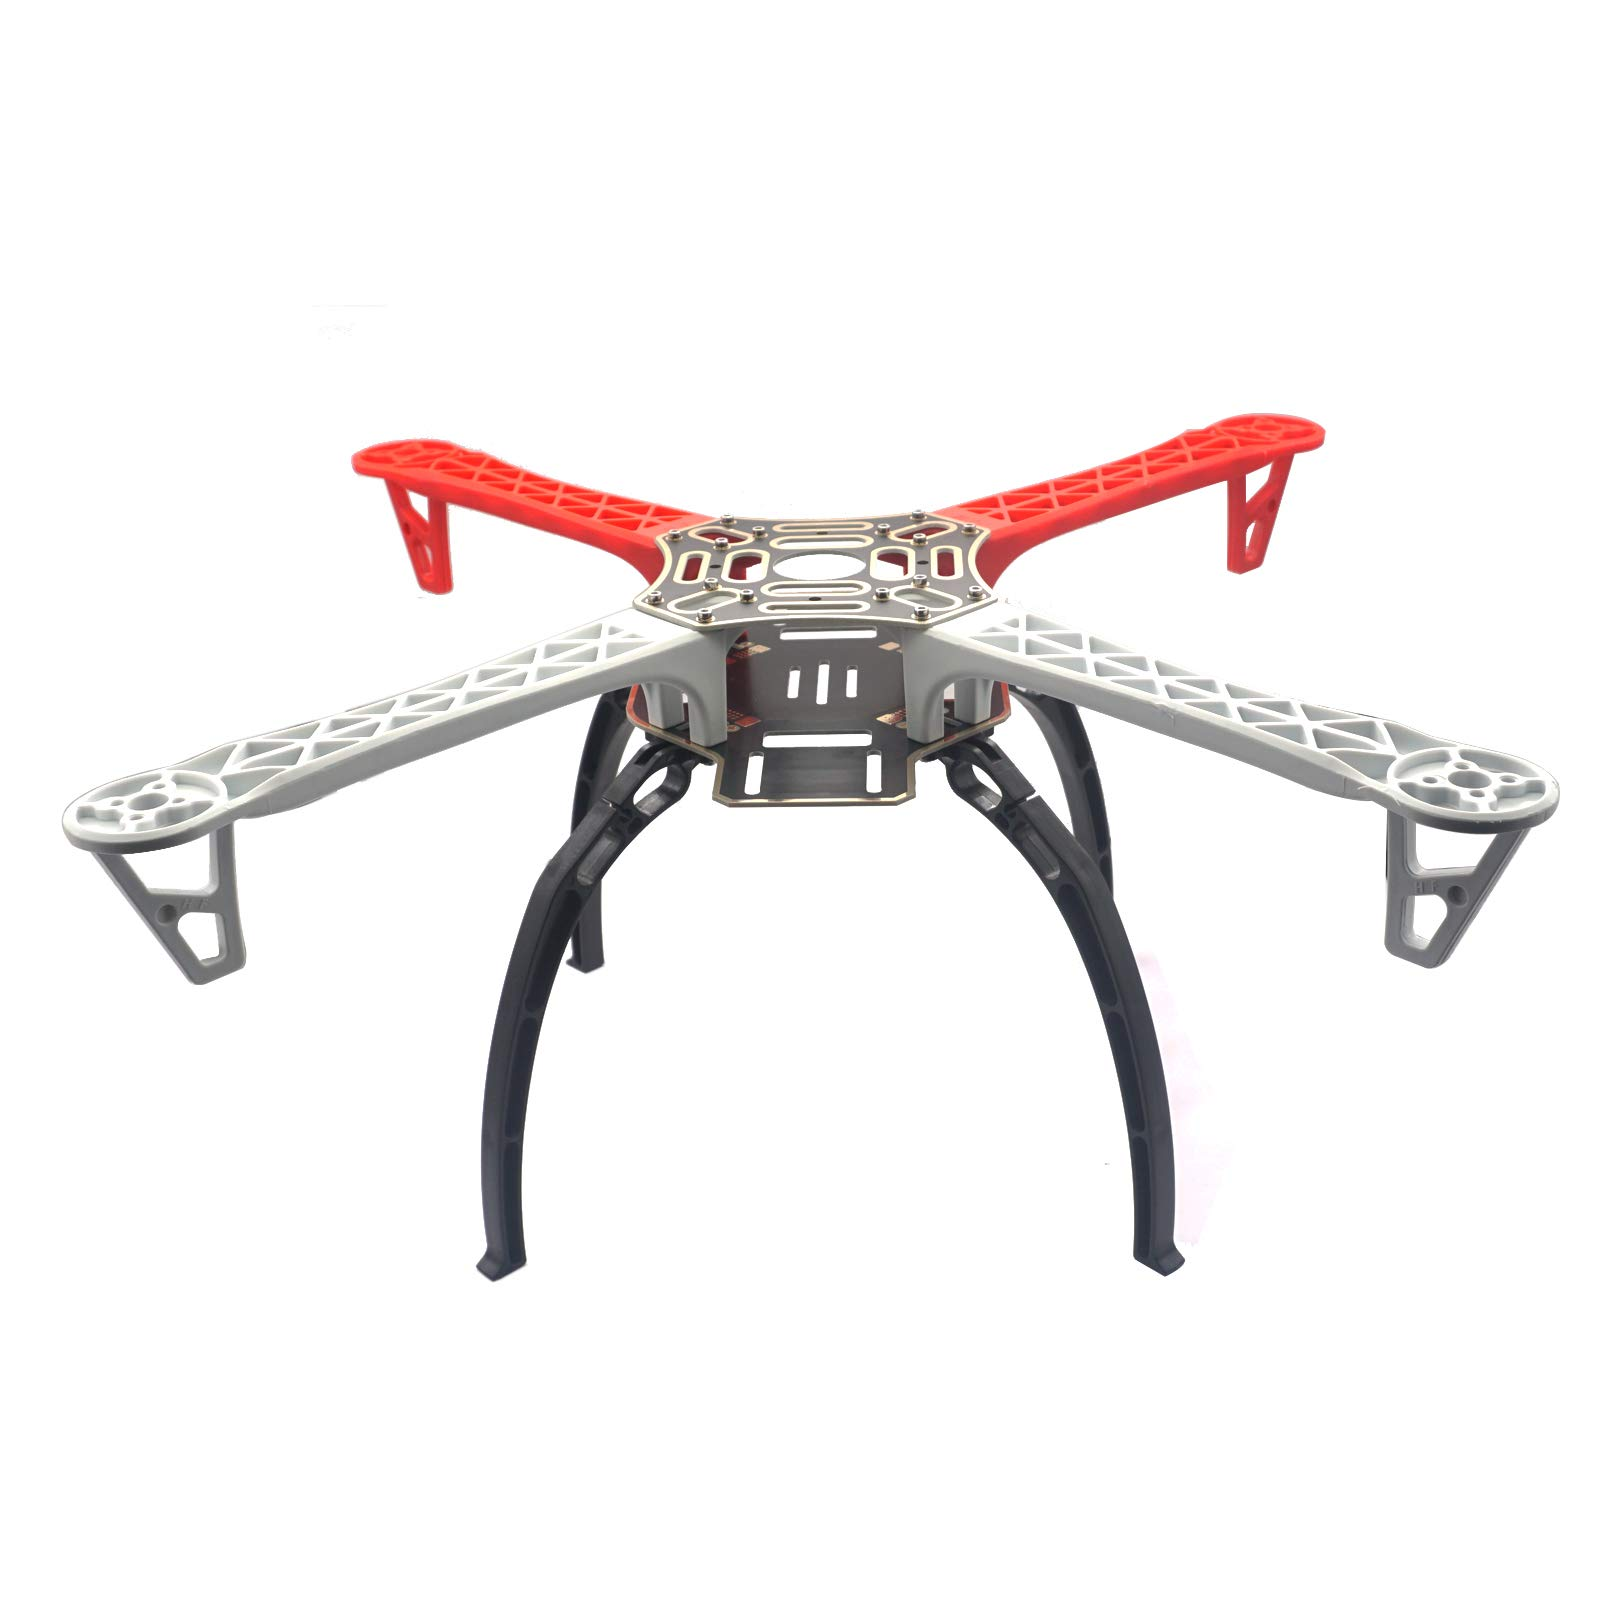 Share Goo F450 4-Axis Multi Rotor Airframe 450mm Drone Frame